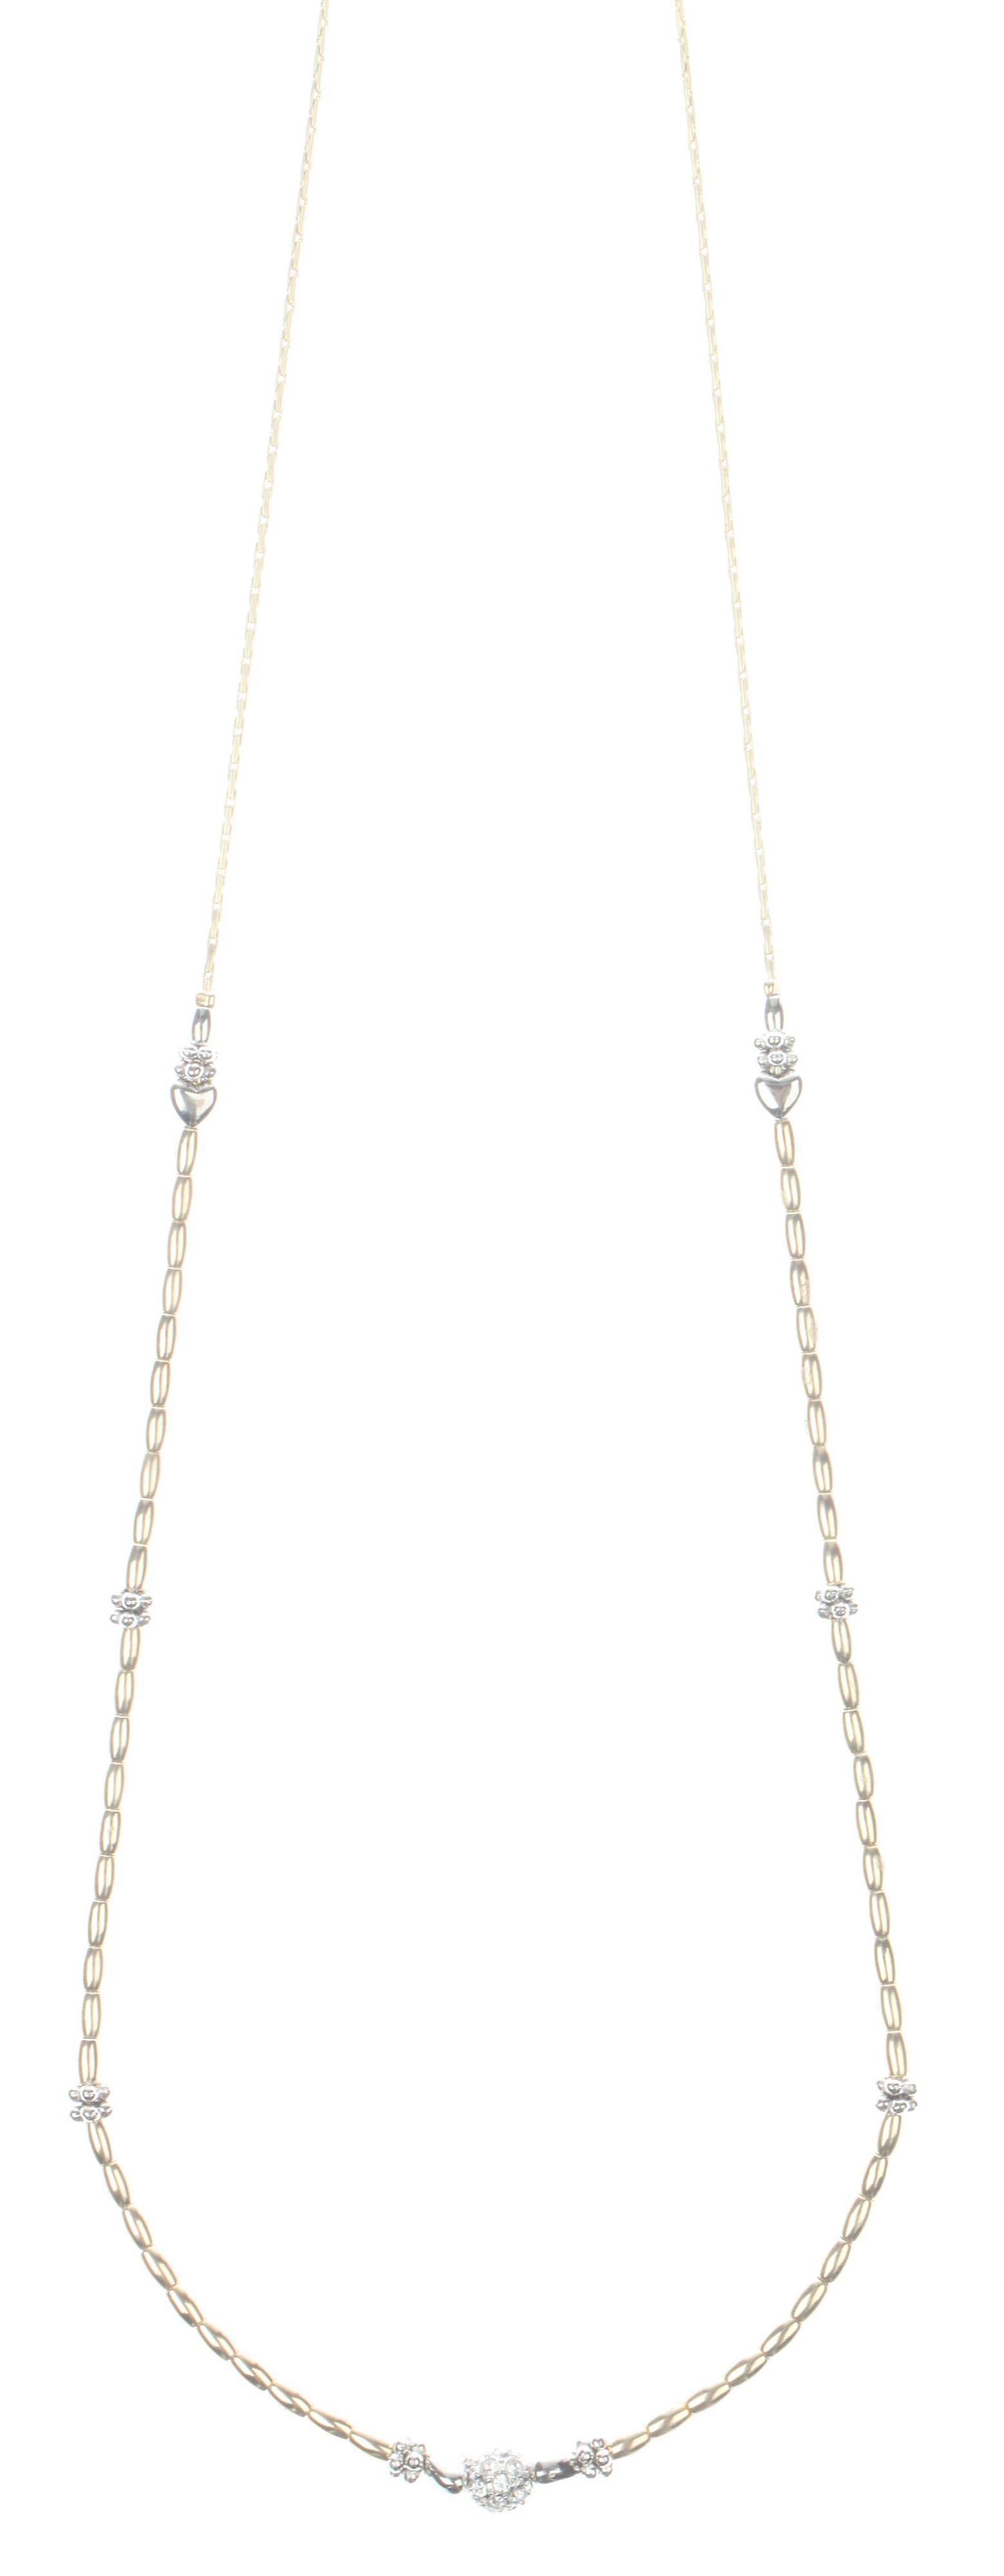 Martine Wester Beaded Necklace